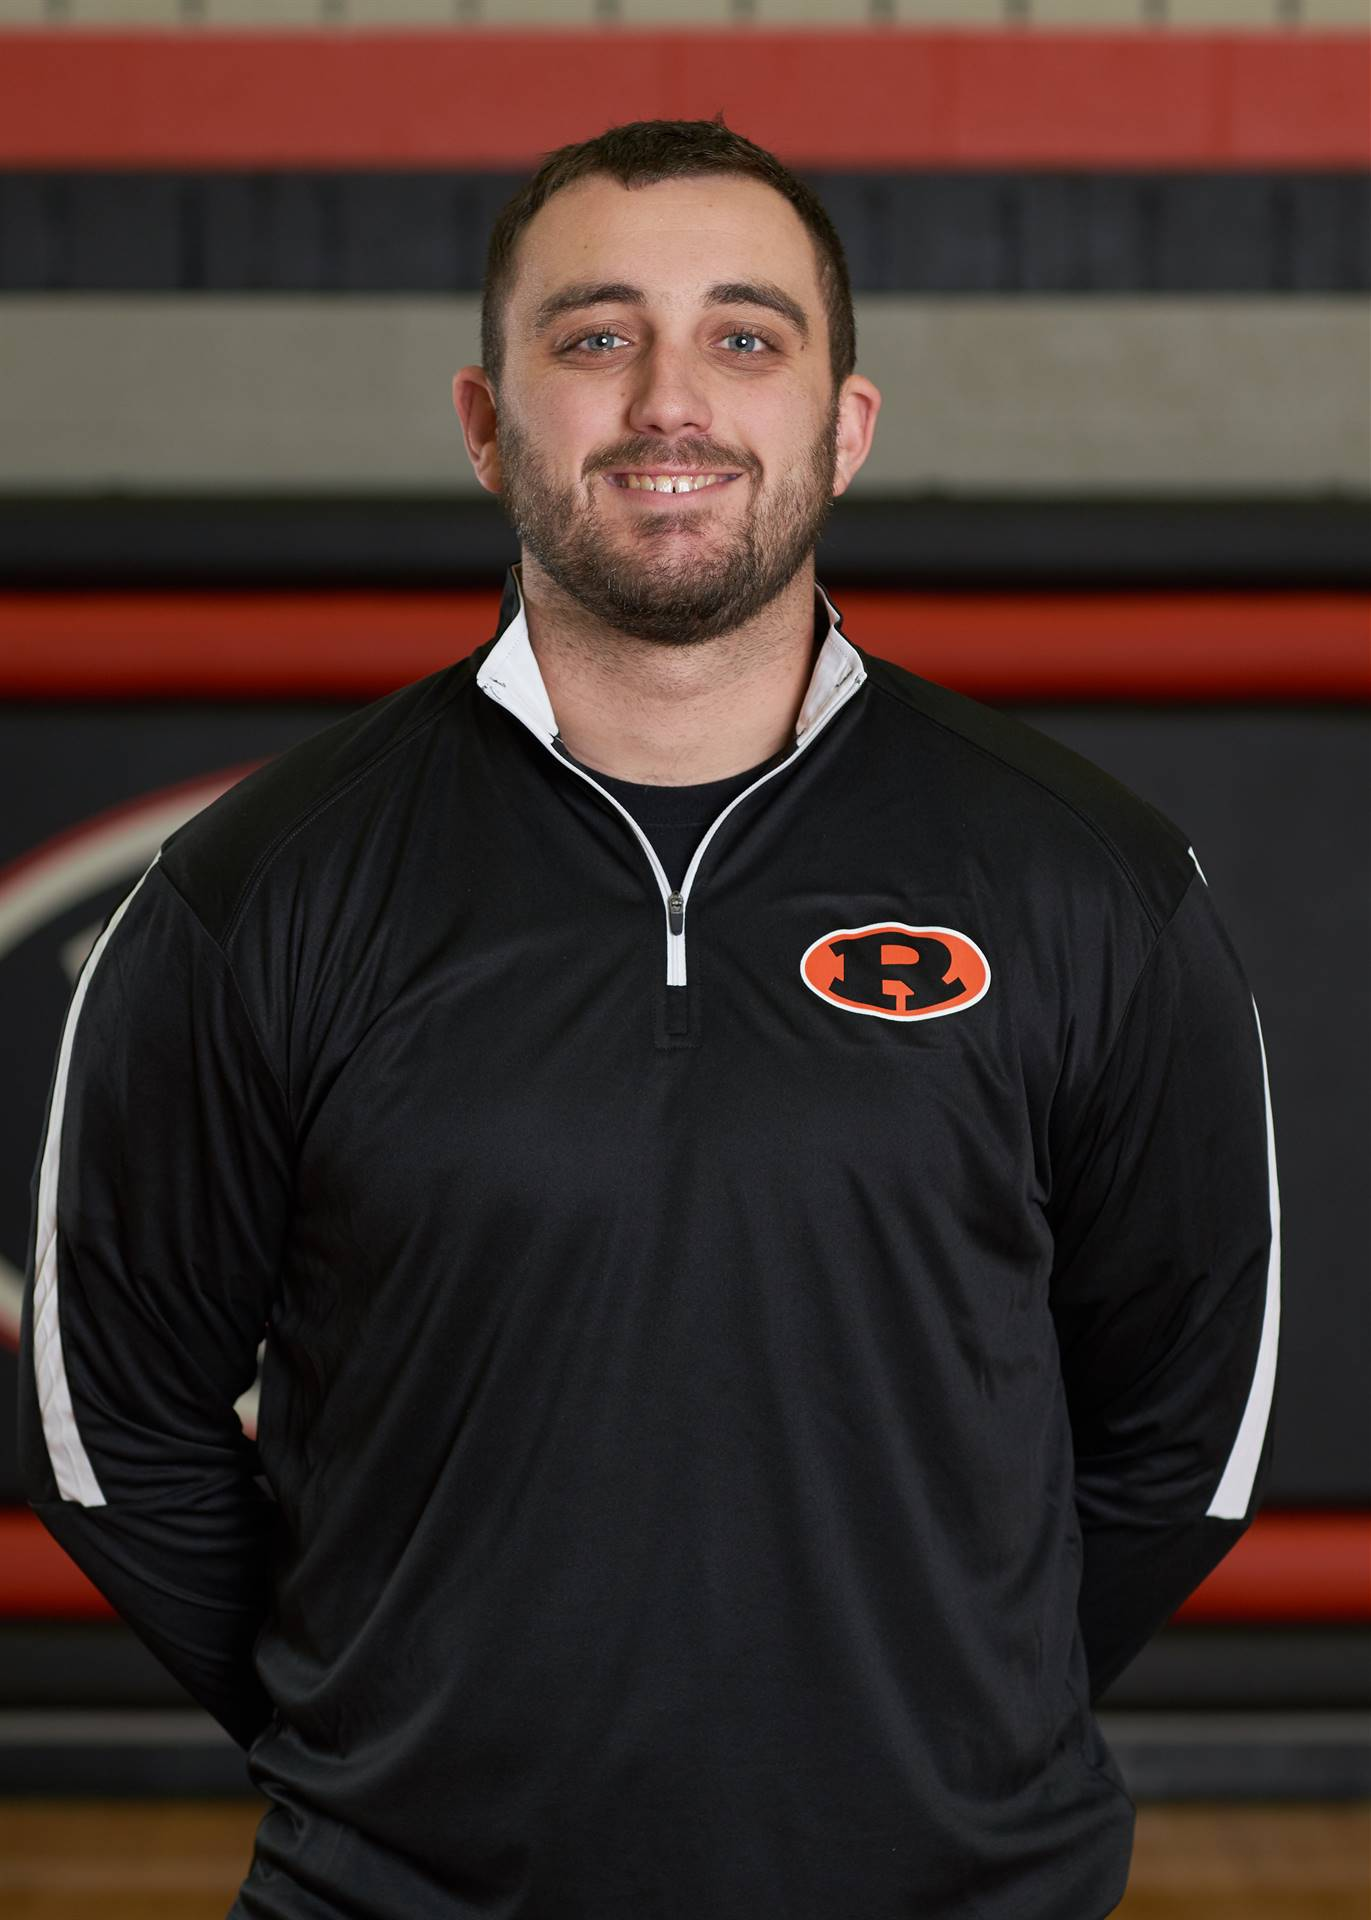 HS Boys Basketball Assistant Coach - Ryan Lowe